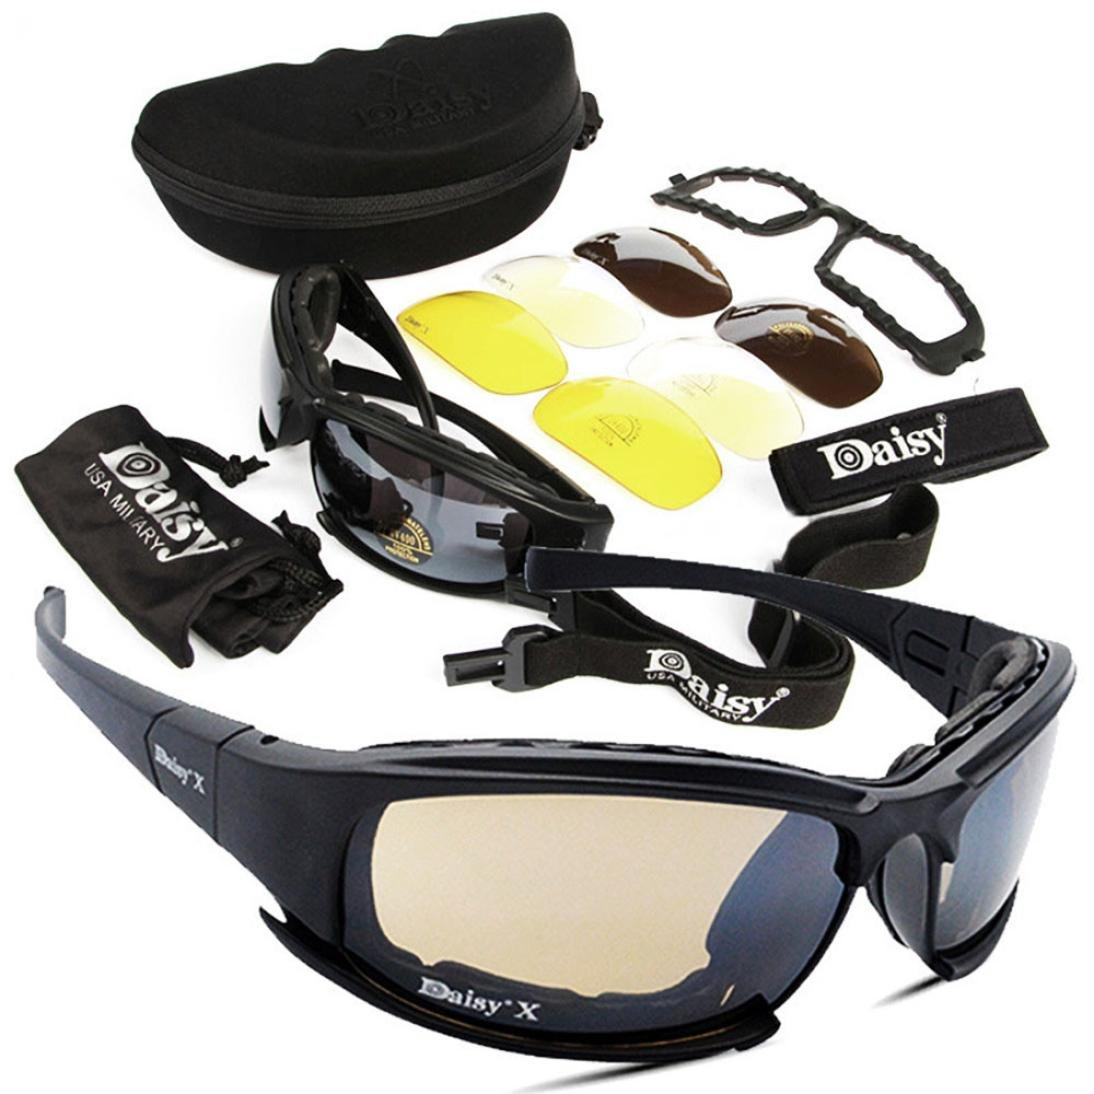 OVERMAL 4 Lens Kit Army Goggles Military Sunglasses Men's Outdoor Sports War Game Tactical Glasses by OVERMAL (Image #2)